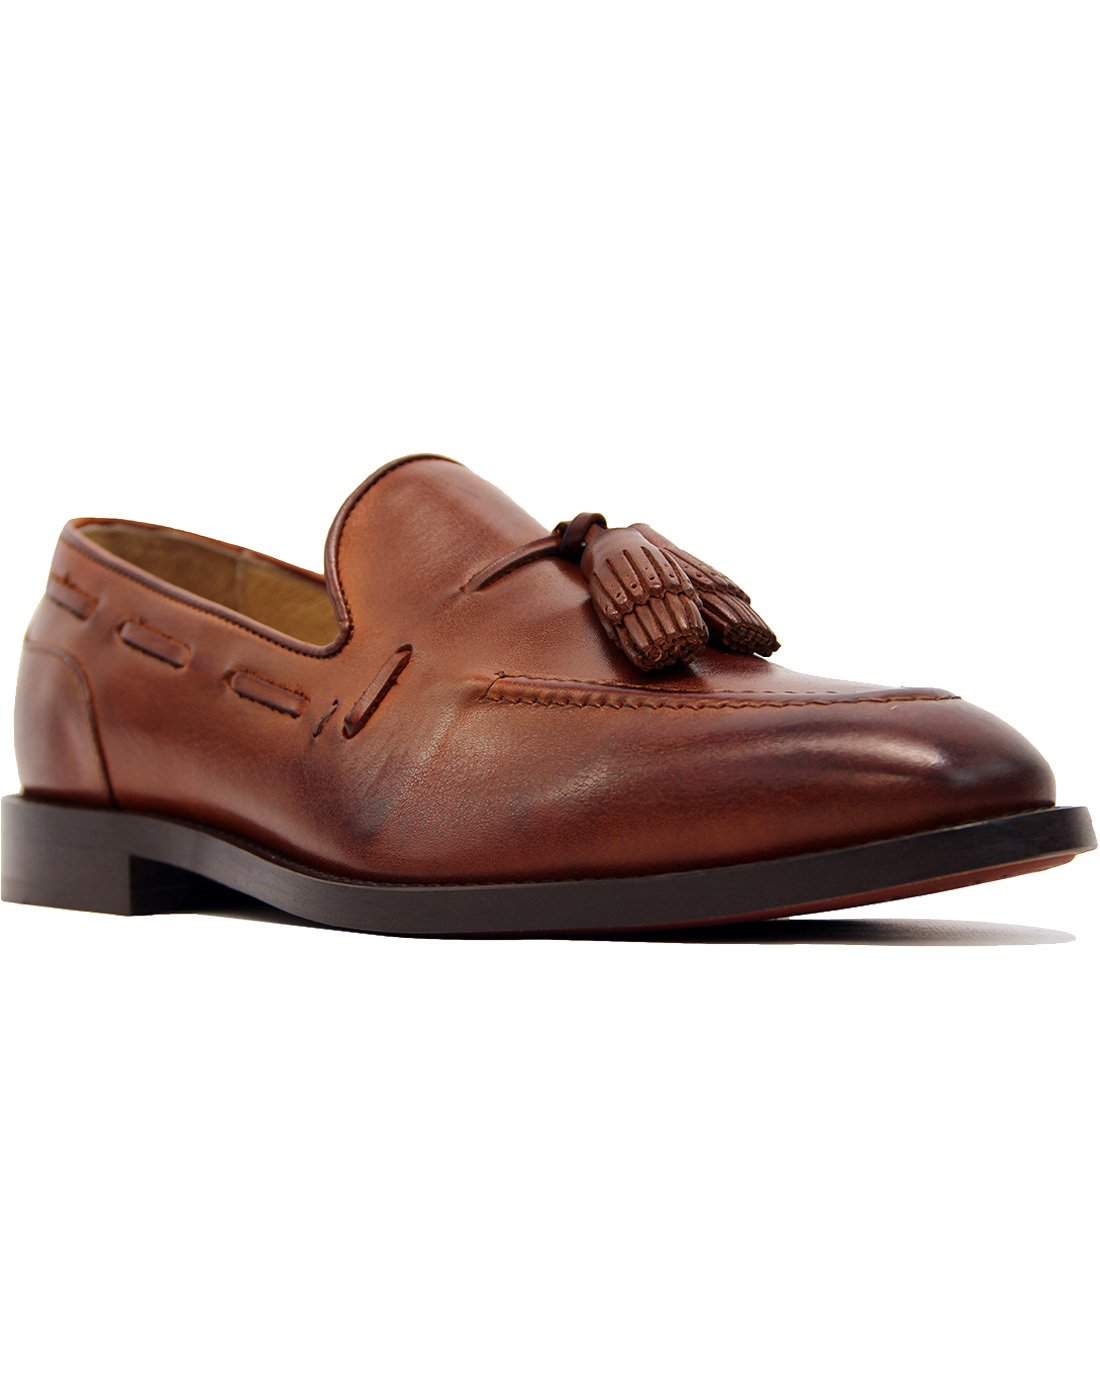 Benedict H by HUDSON Retro 60s Tassel Loafers